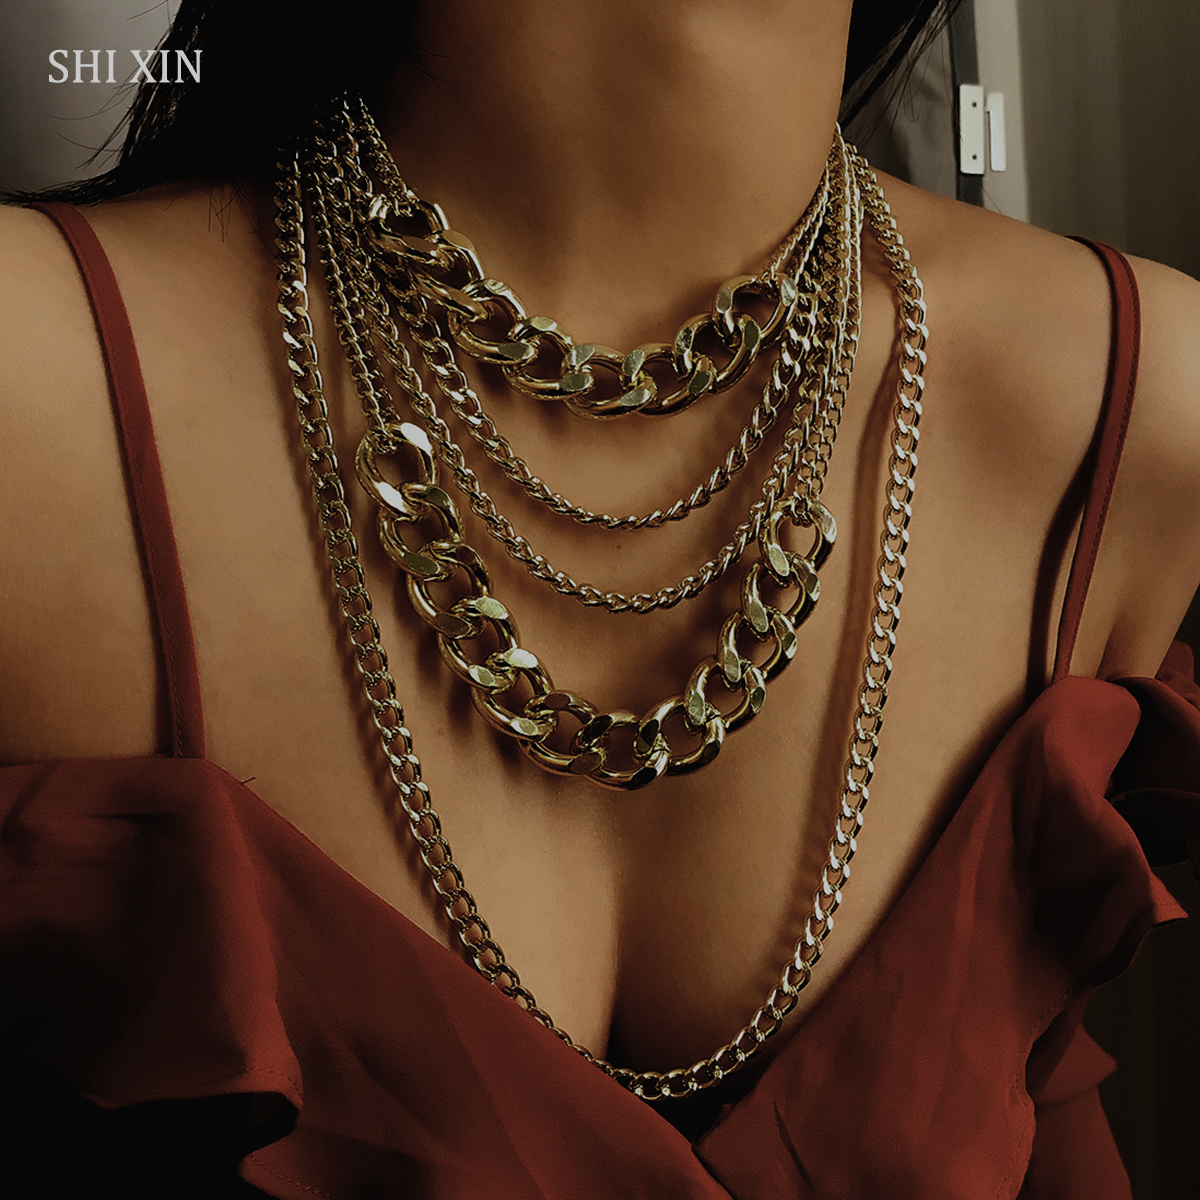 SHIXIN Punk Exaggerated Big Layered Thick Cuban Link Chain Choker Necklace Women Fashion Hippie Modern Night Club Jewelry GiftsSHIXIN Punk Exaggerated Big Layered Thick Cuban Link Chain Choker Necklace Women Fashion Hippie Modern Night Club Jewelry Gifts